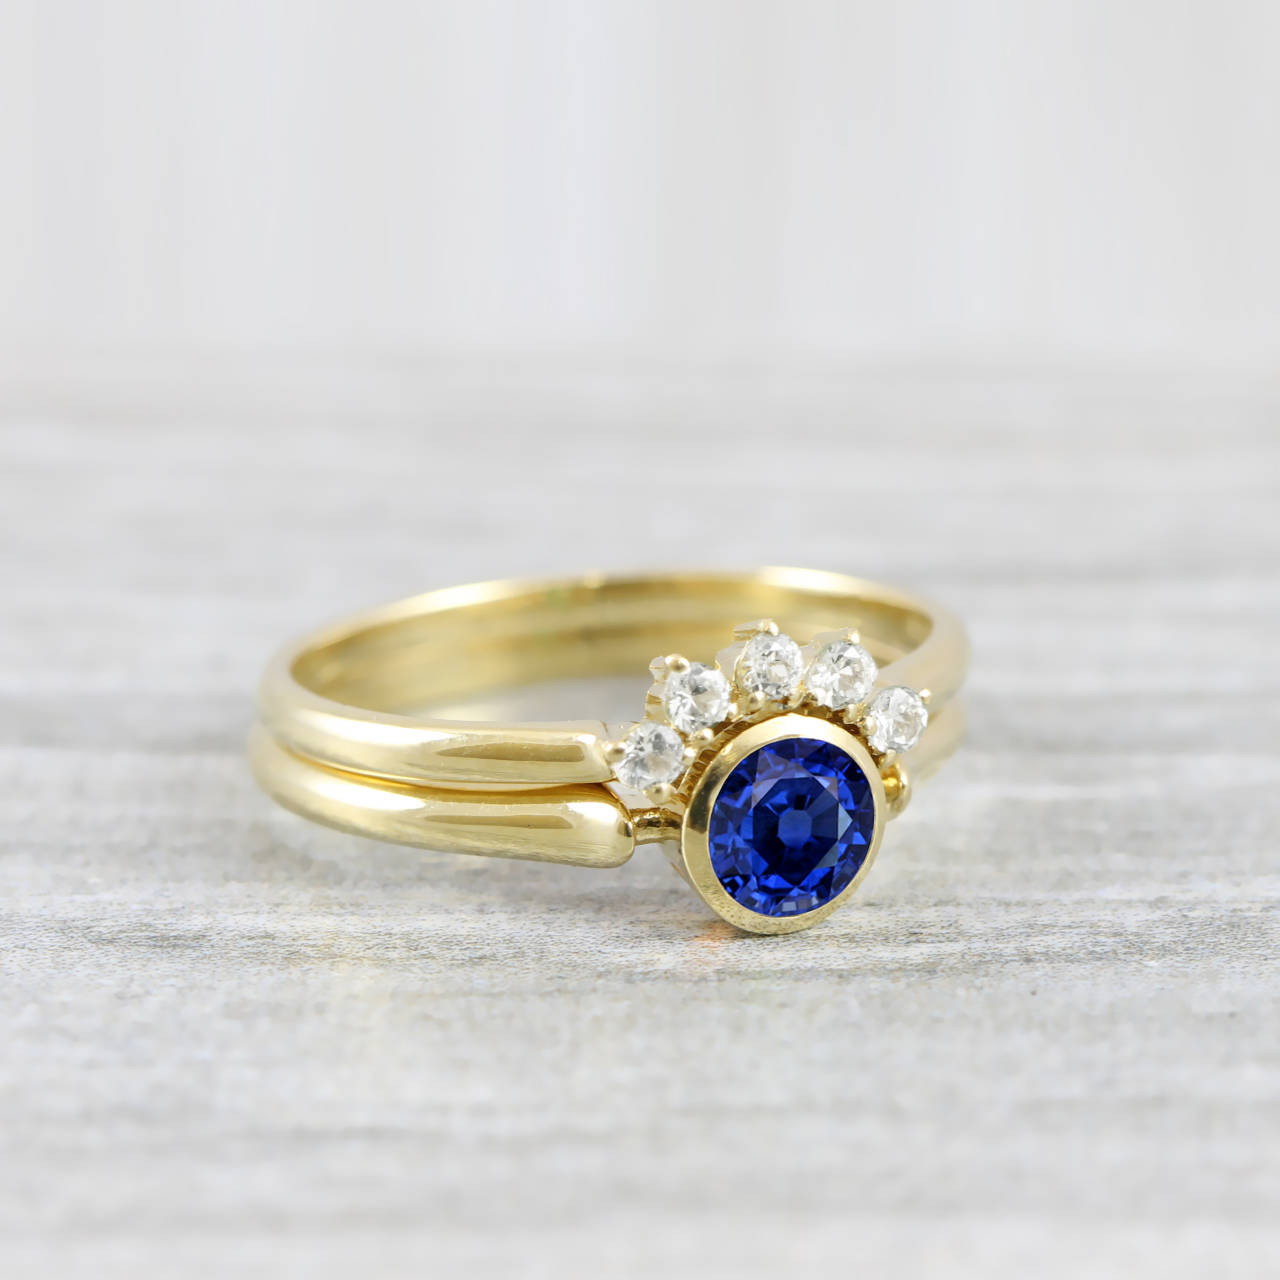 8bf88896b18a Sapphire and diamond engagement wedding ring set handmade in  rose white yellow gold art deco inspired thin petite band minimal unique –  Aardvark Jewellery